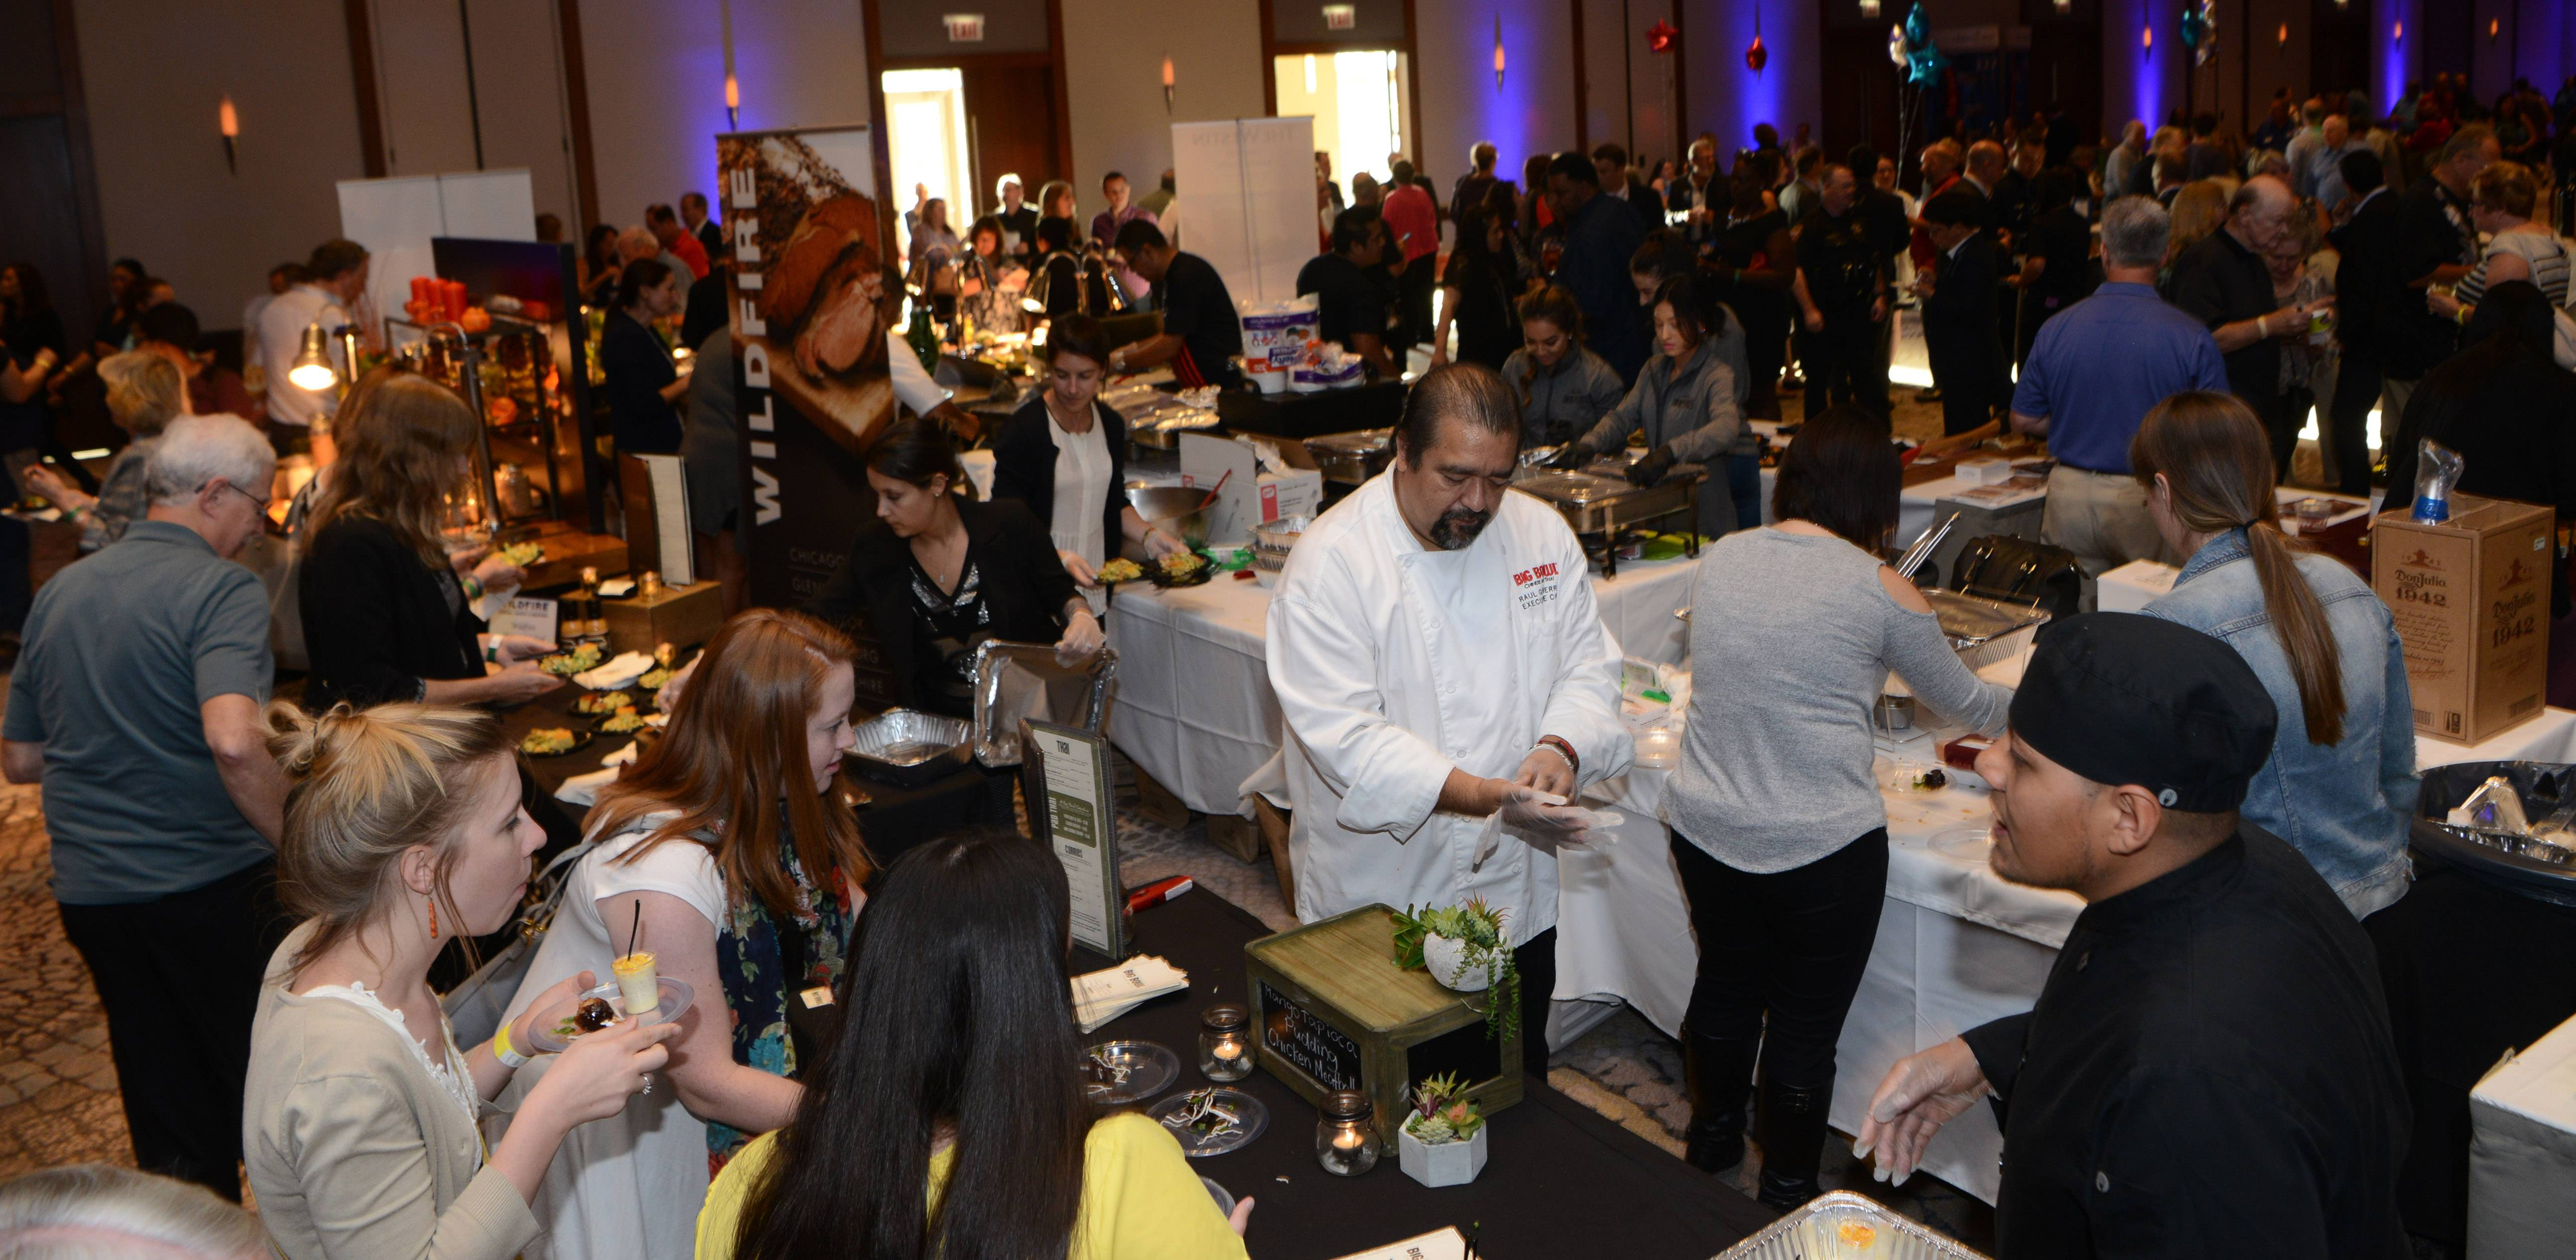 Restaurants offer a variety of dishes and drinks during Wheeling's Taste of the Town, held at The Westin Chicago North Shore in Wheeling Thursday.